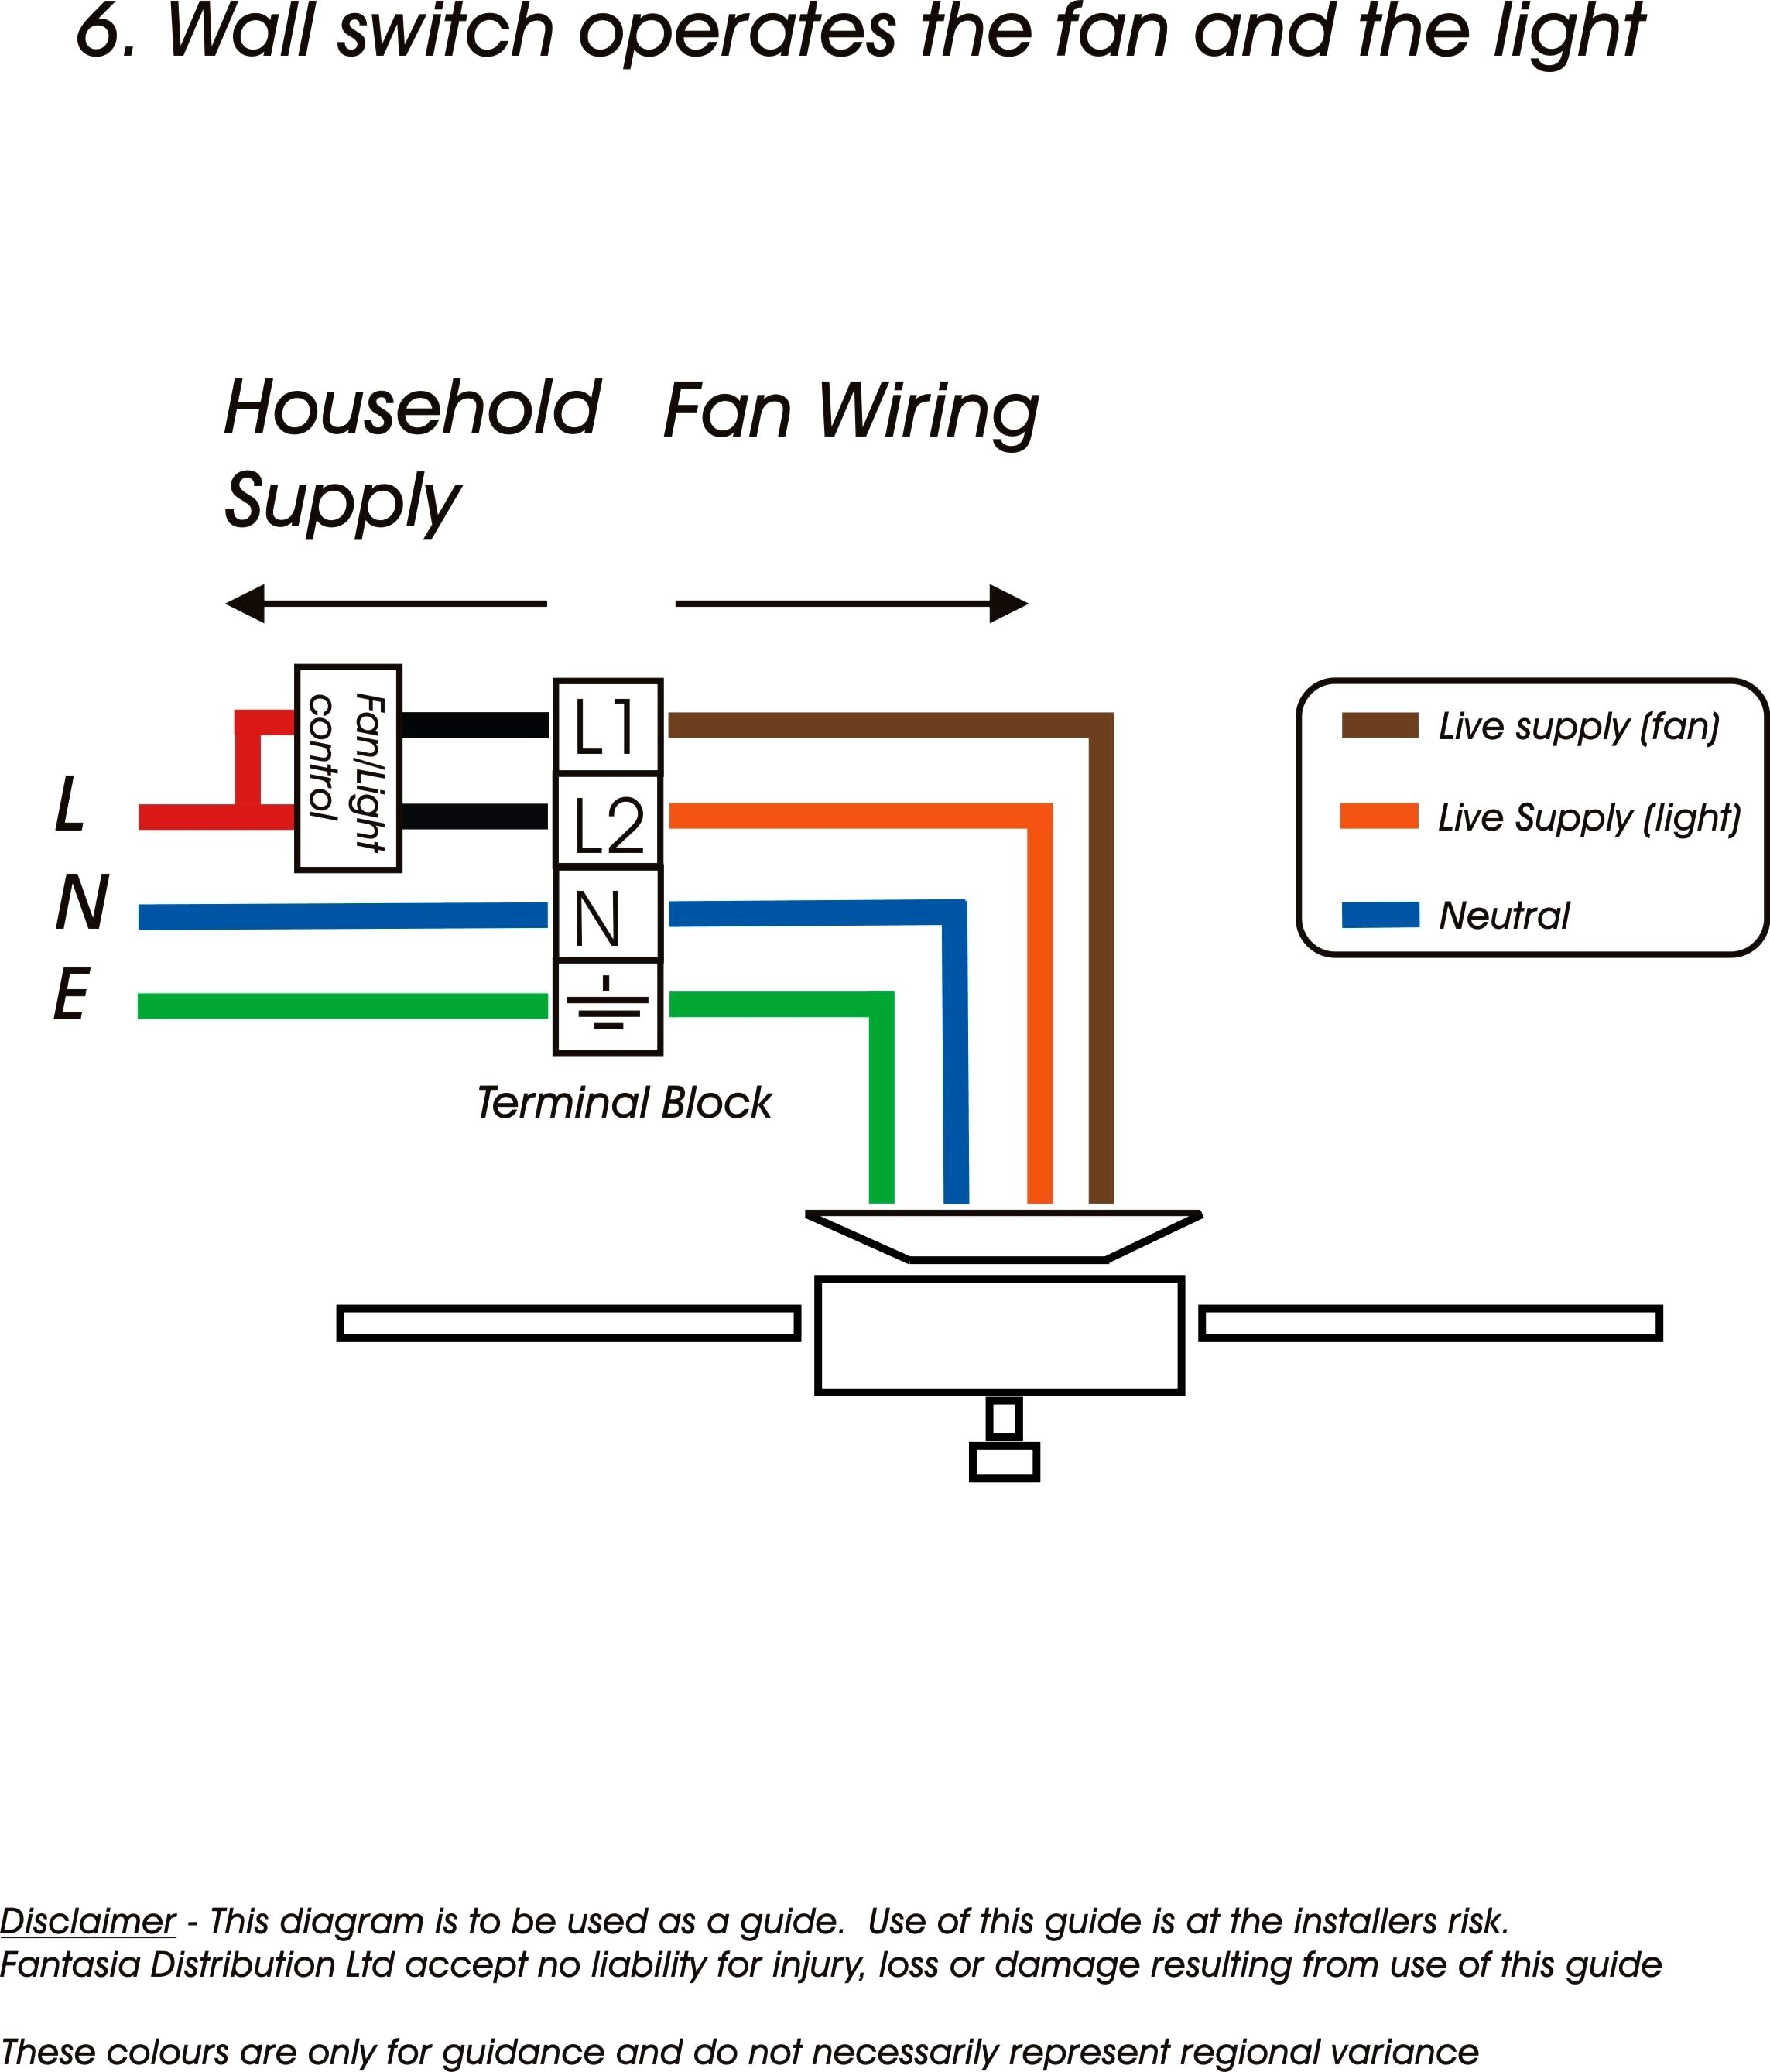 6dac24e4ec340964f4ce61a5030f463a smc ceiling fan wiring diagram bottlesandblends smc fan wiring diagram at alyssarenee.co